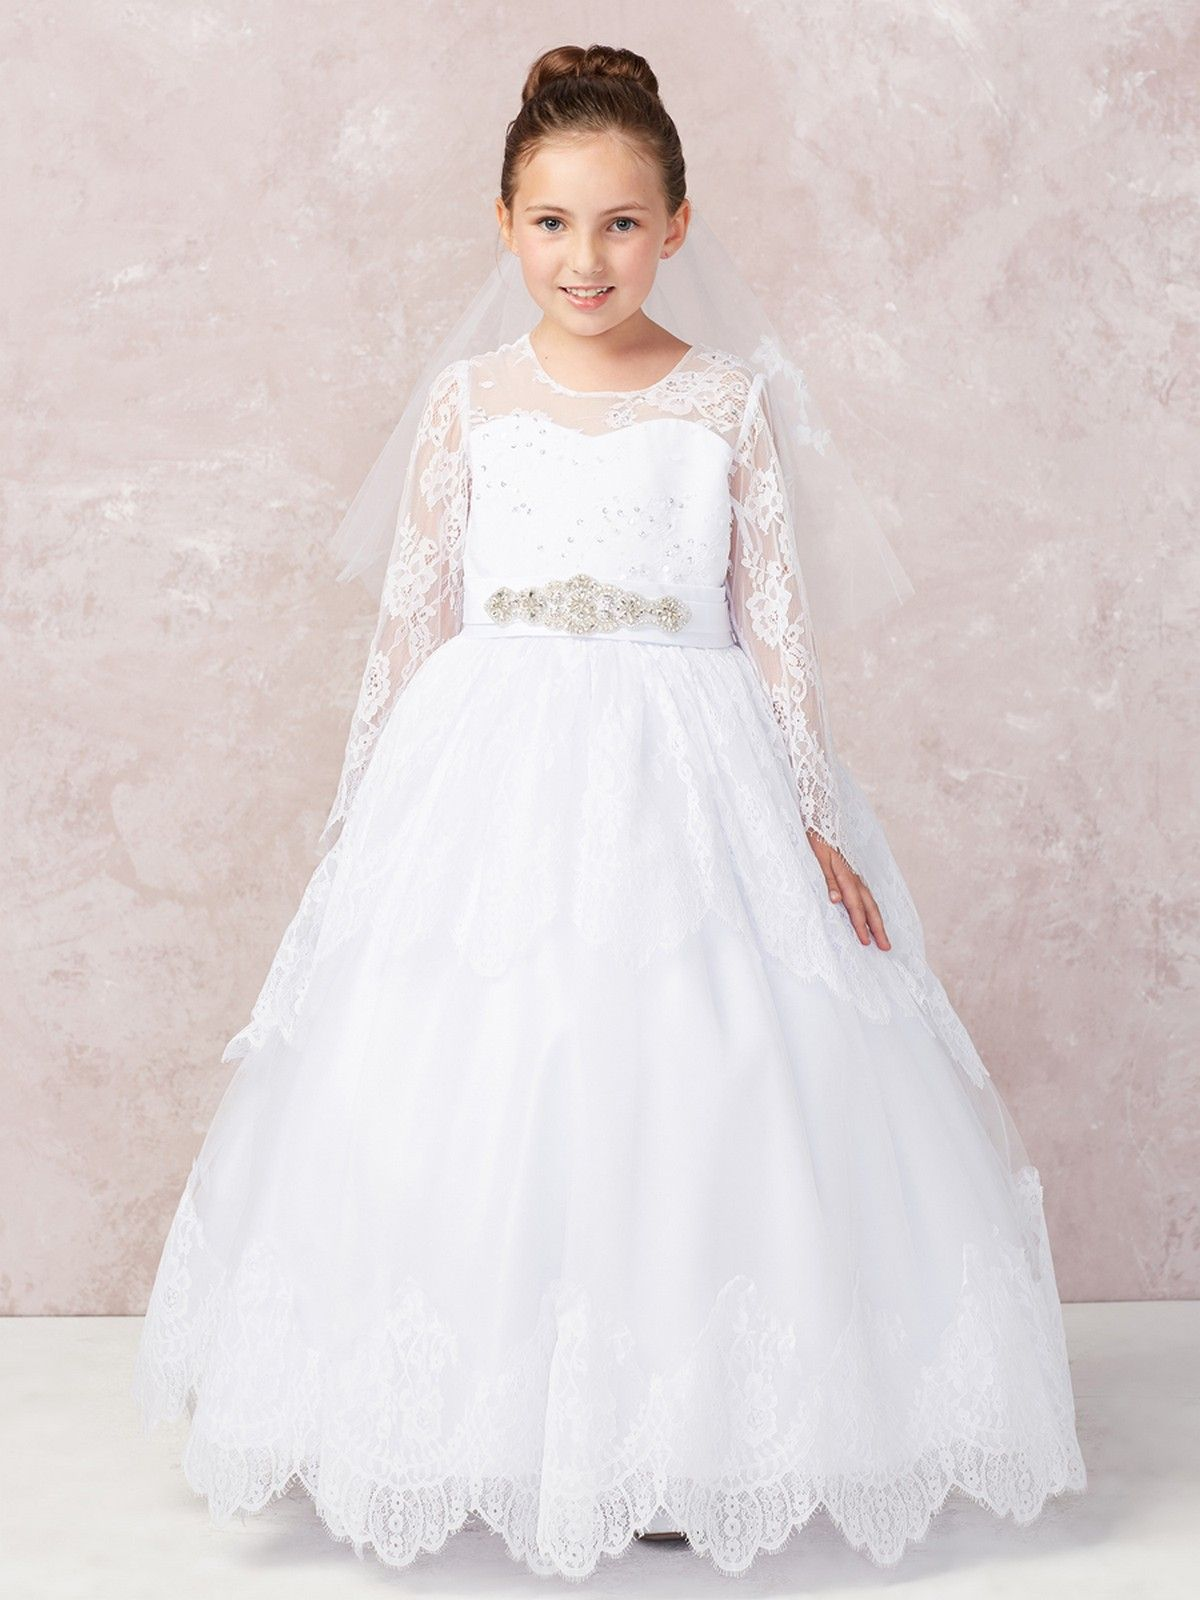 Ready to ship,First communion dress,Flower girls dress,First communion gowns,Wedding dress,Lace wedding dress,Holy communion dress,Communion